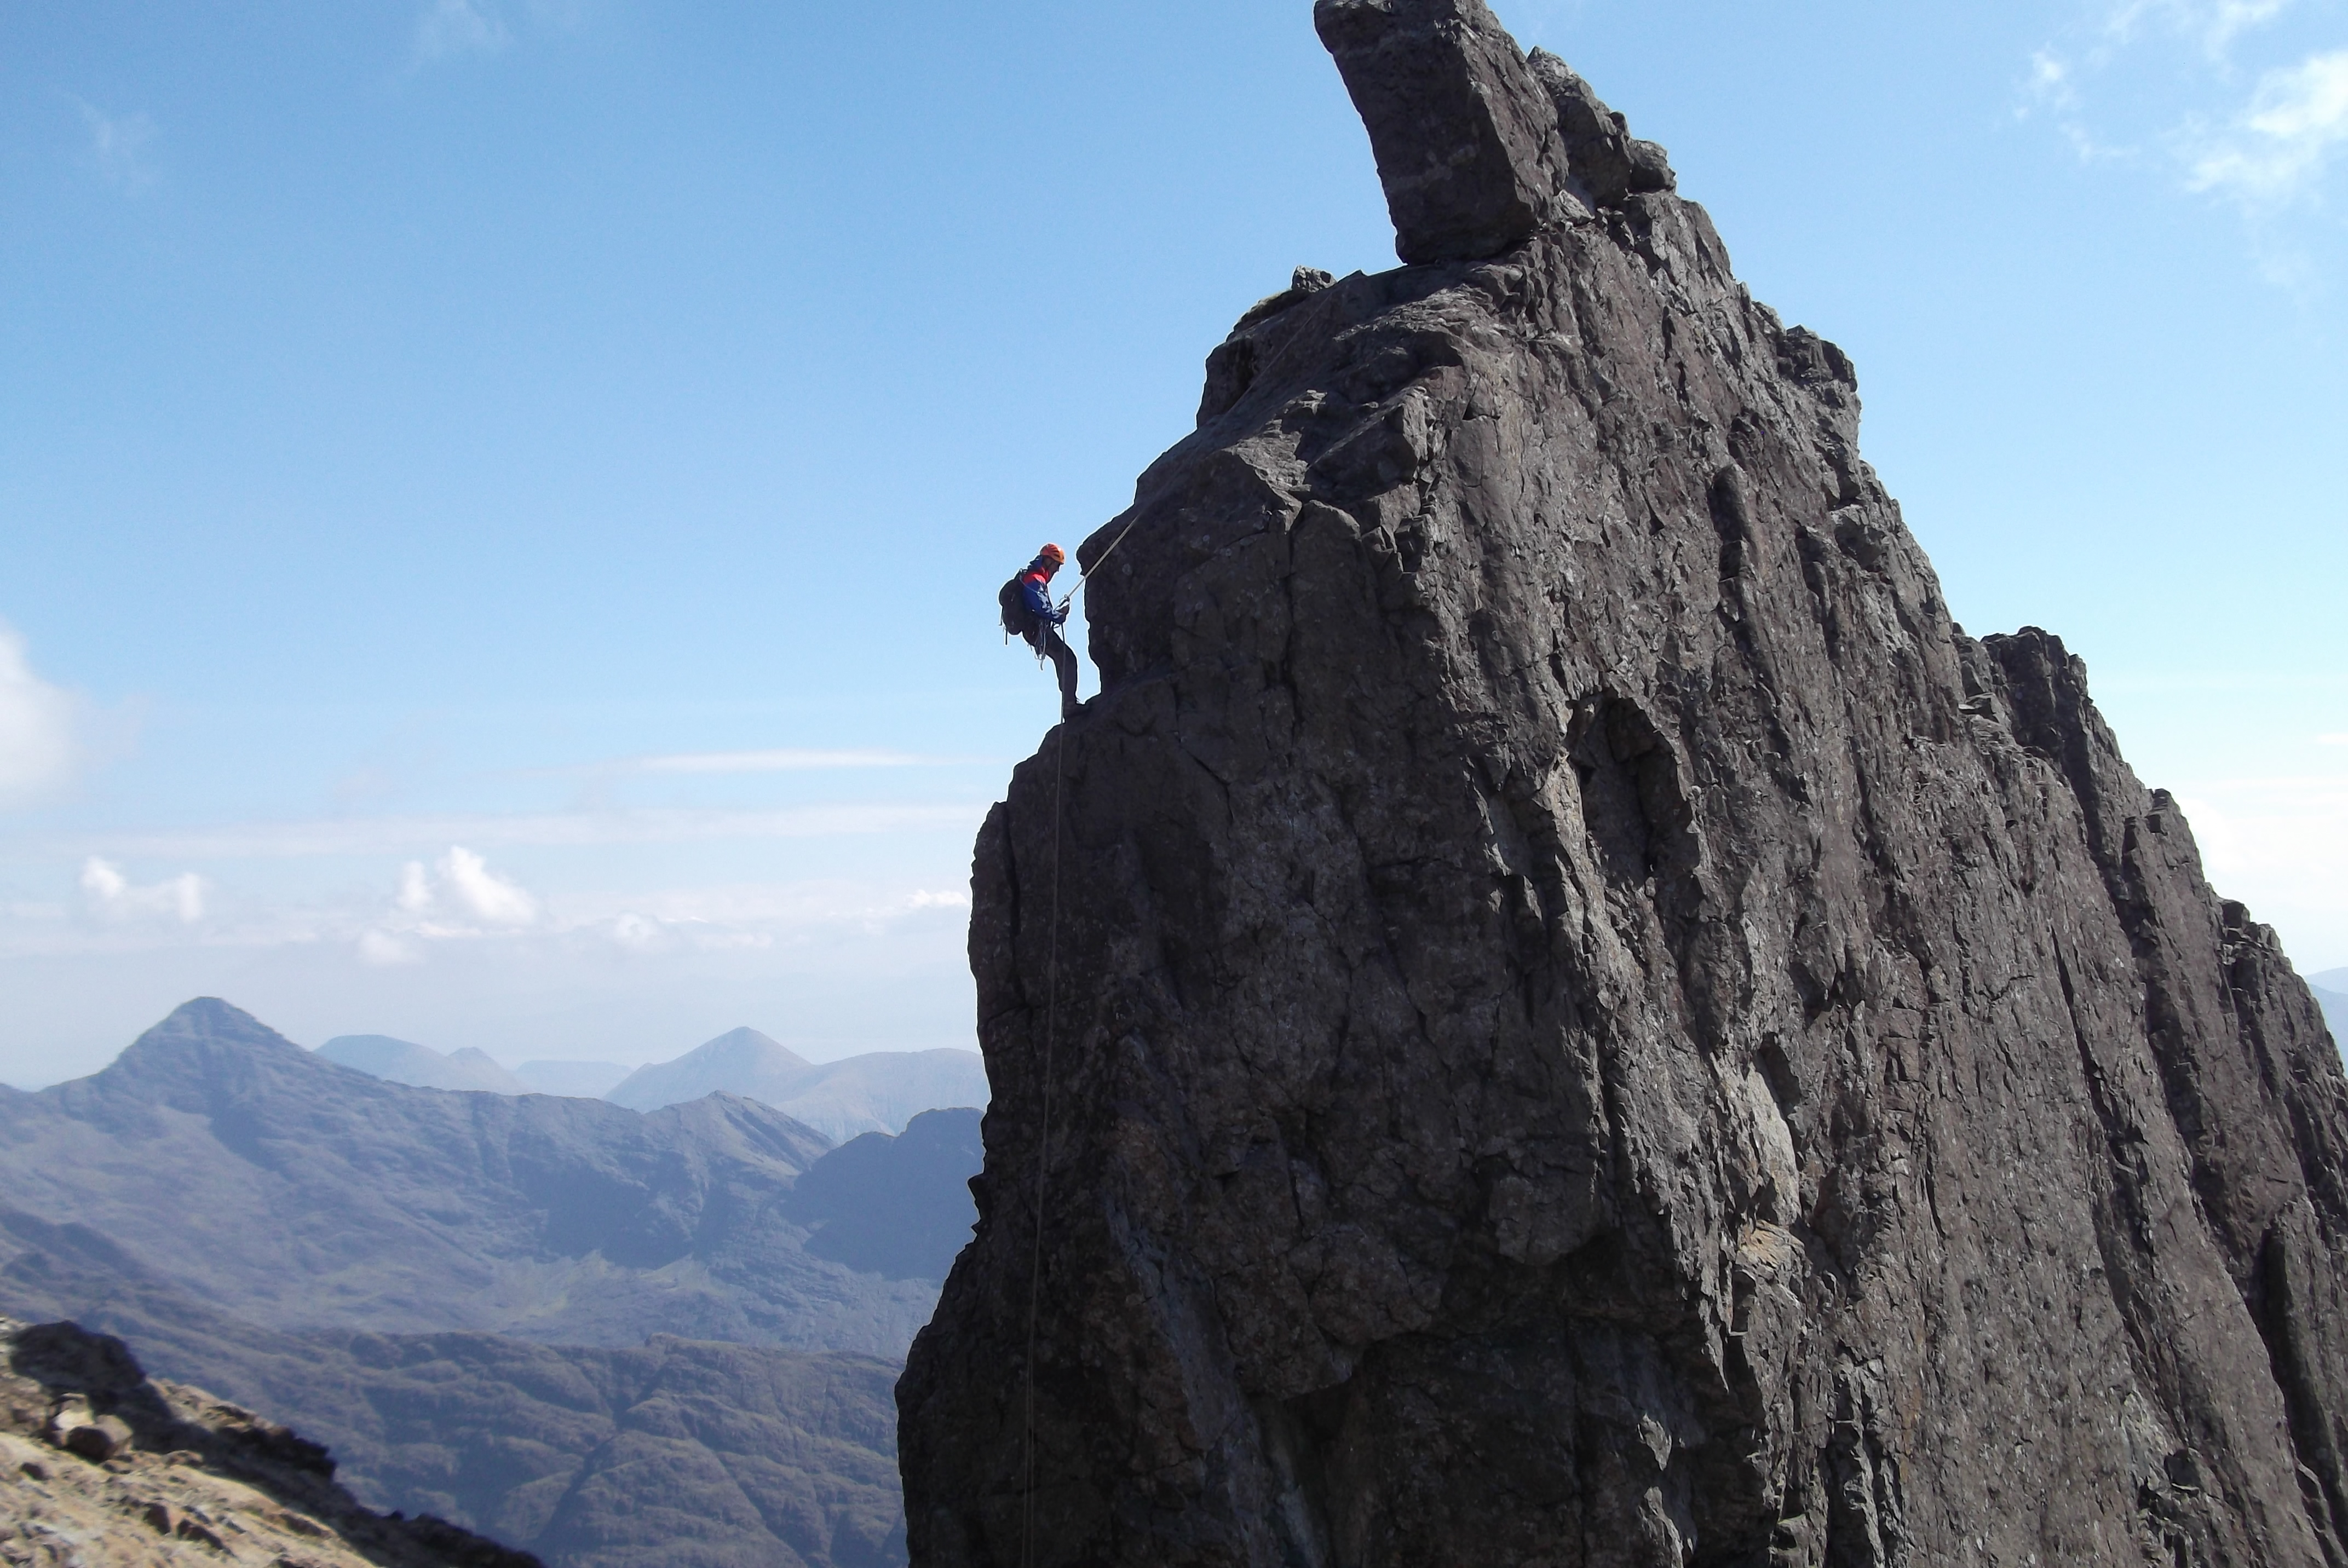 Inaccessible Pinnacle Guide, Guided ascent of the Inaccessible Pinnacle, Skye Cuillin Ridge Guide